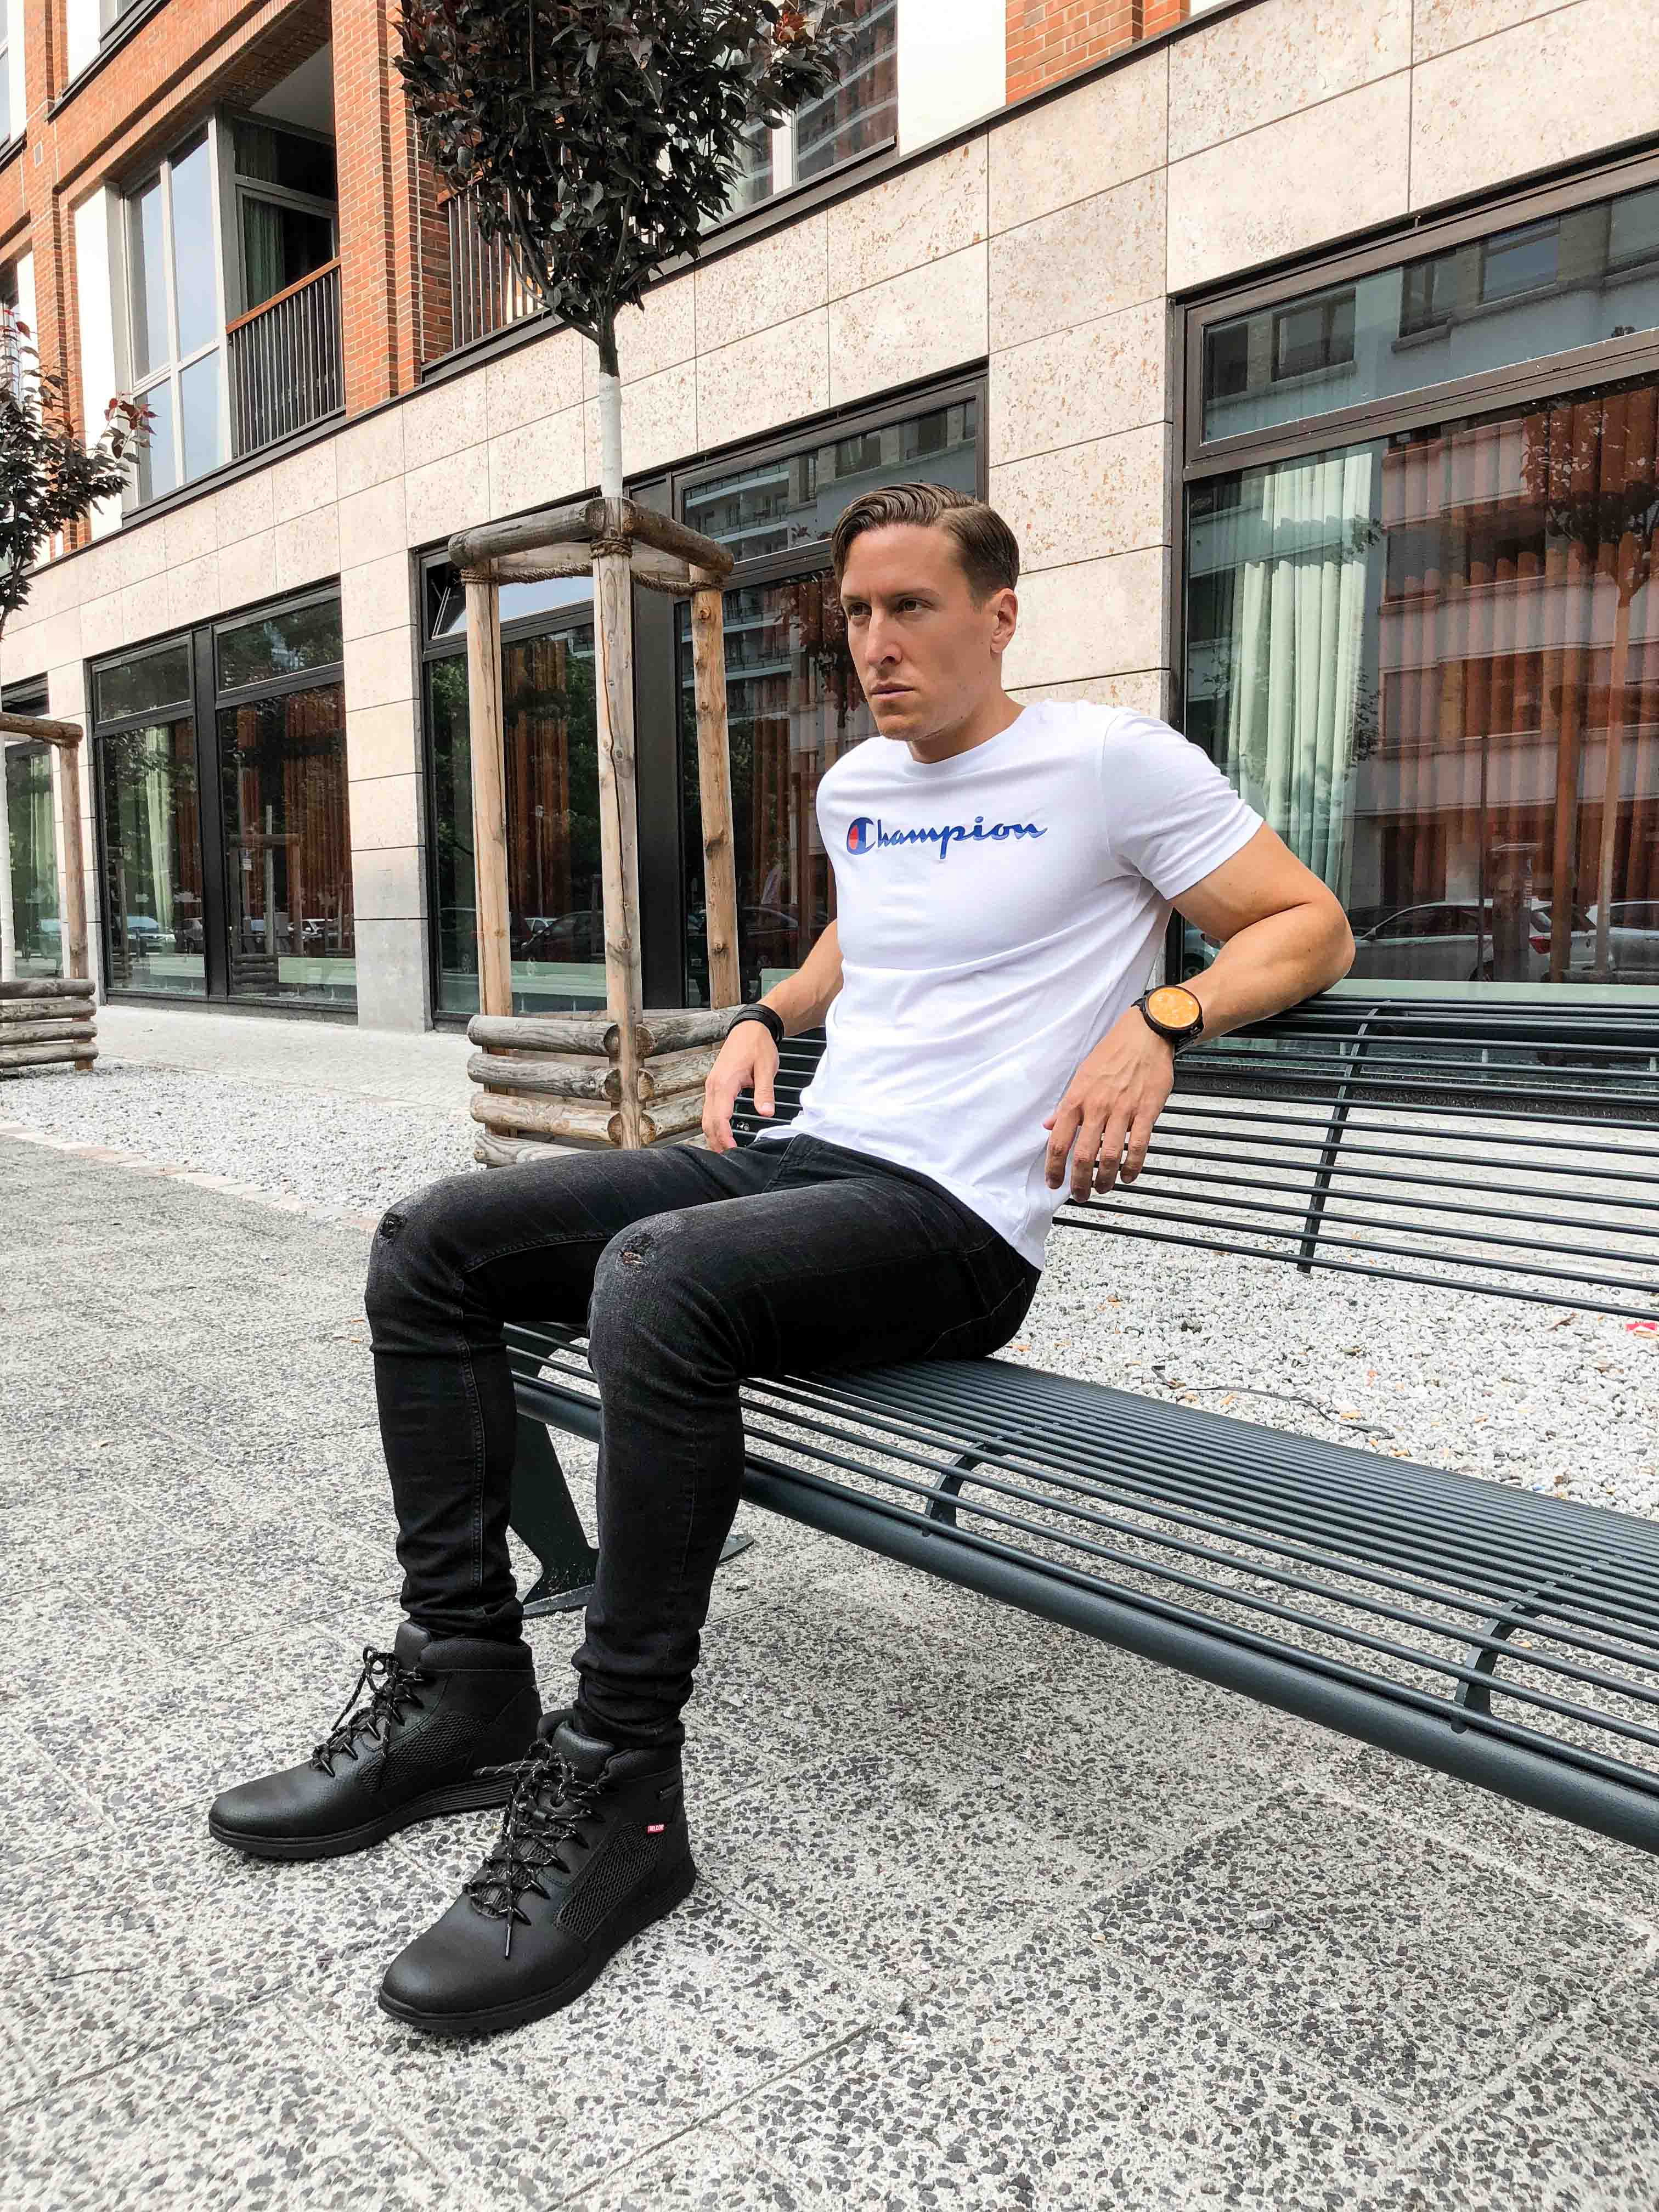 weisses-champion-shirt-sportlicher-look-sommer-berlin-blogger-retro-modeblog-timberland-helcor-boots